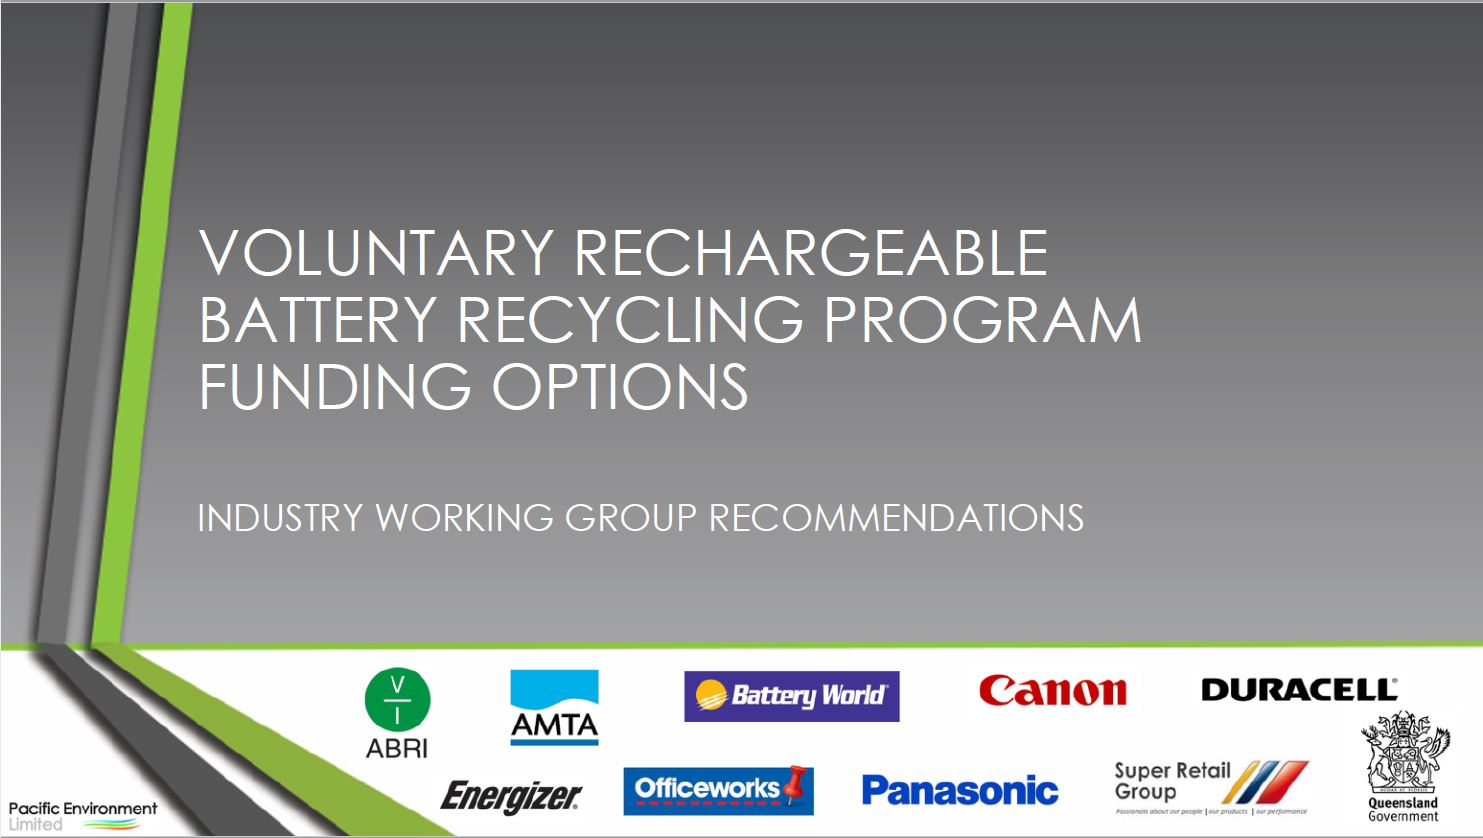 Voluntary Rechargeable Battery Recycling Program Funding Options